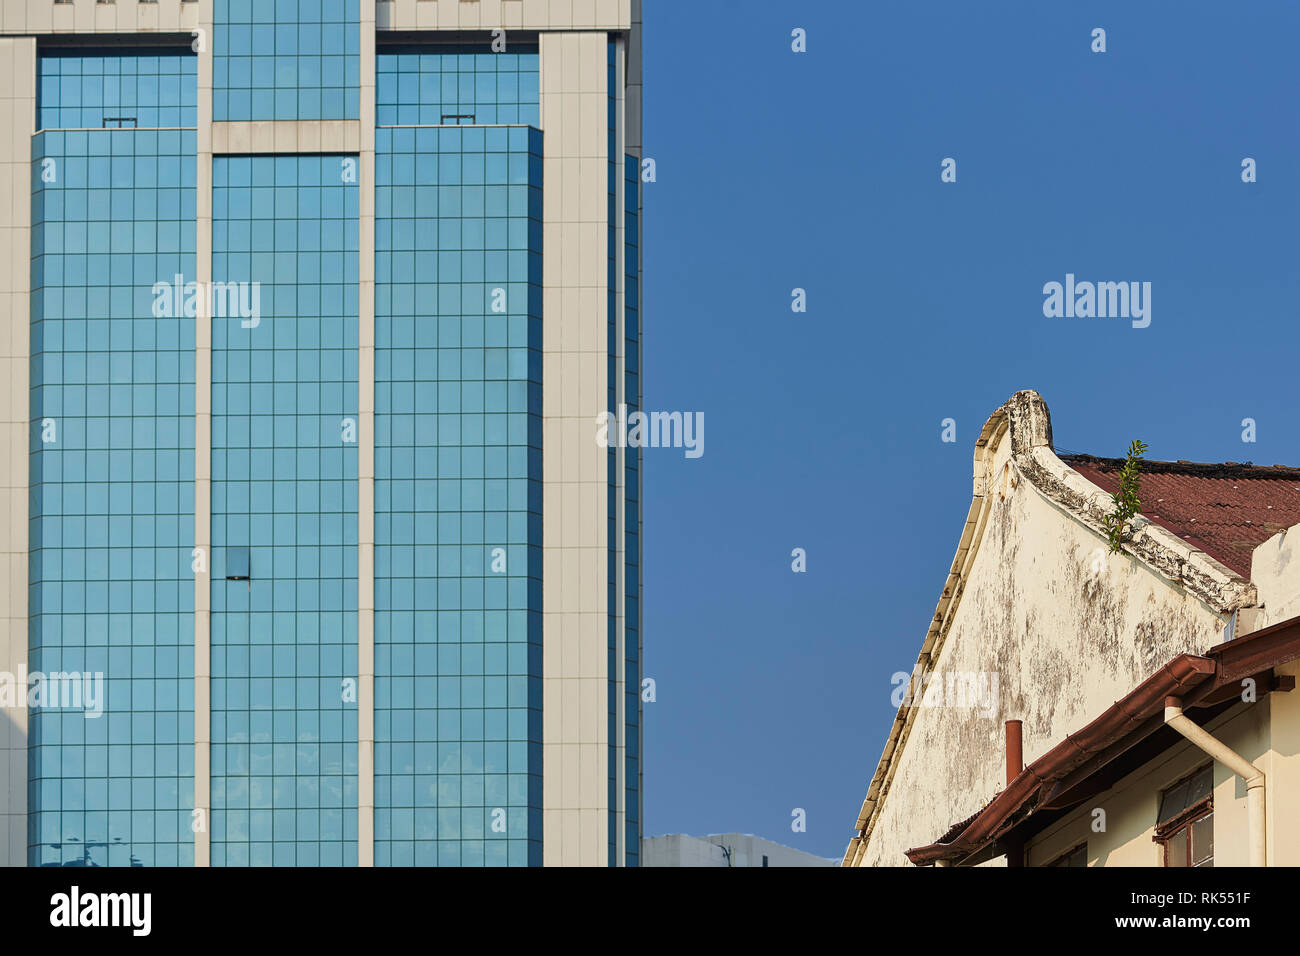 a old shophouse  and a modern building on the street in George Town, Penang, Malaysia - Stock Image